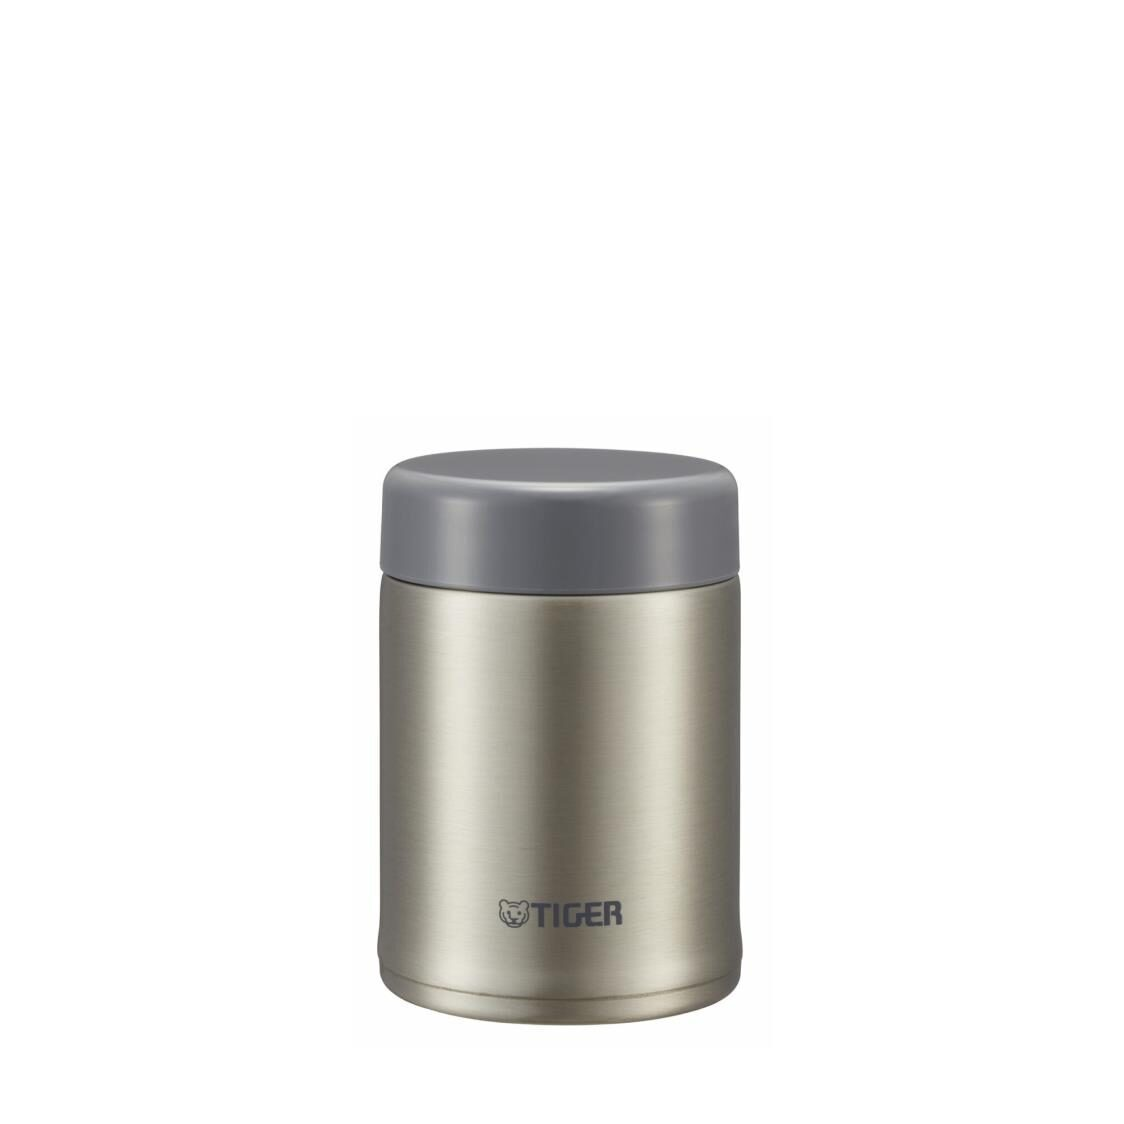 Tiger 250ml Double Stainless Steel Soup Porridge Cup Clear Stainless MCA-025XC